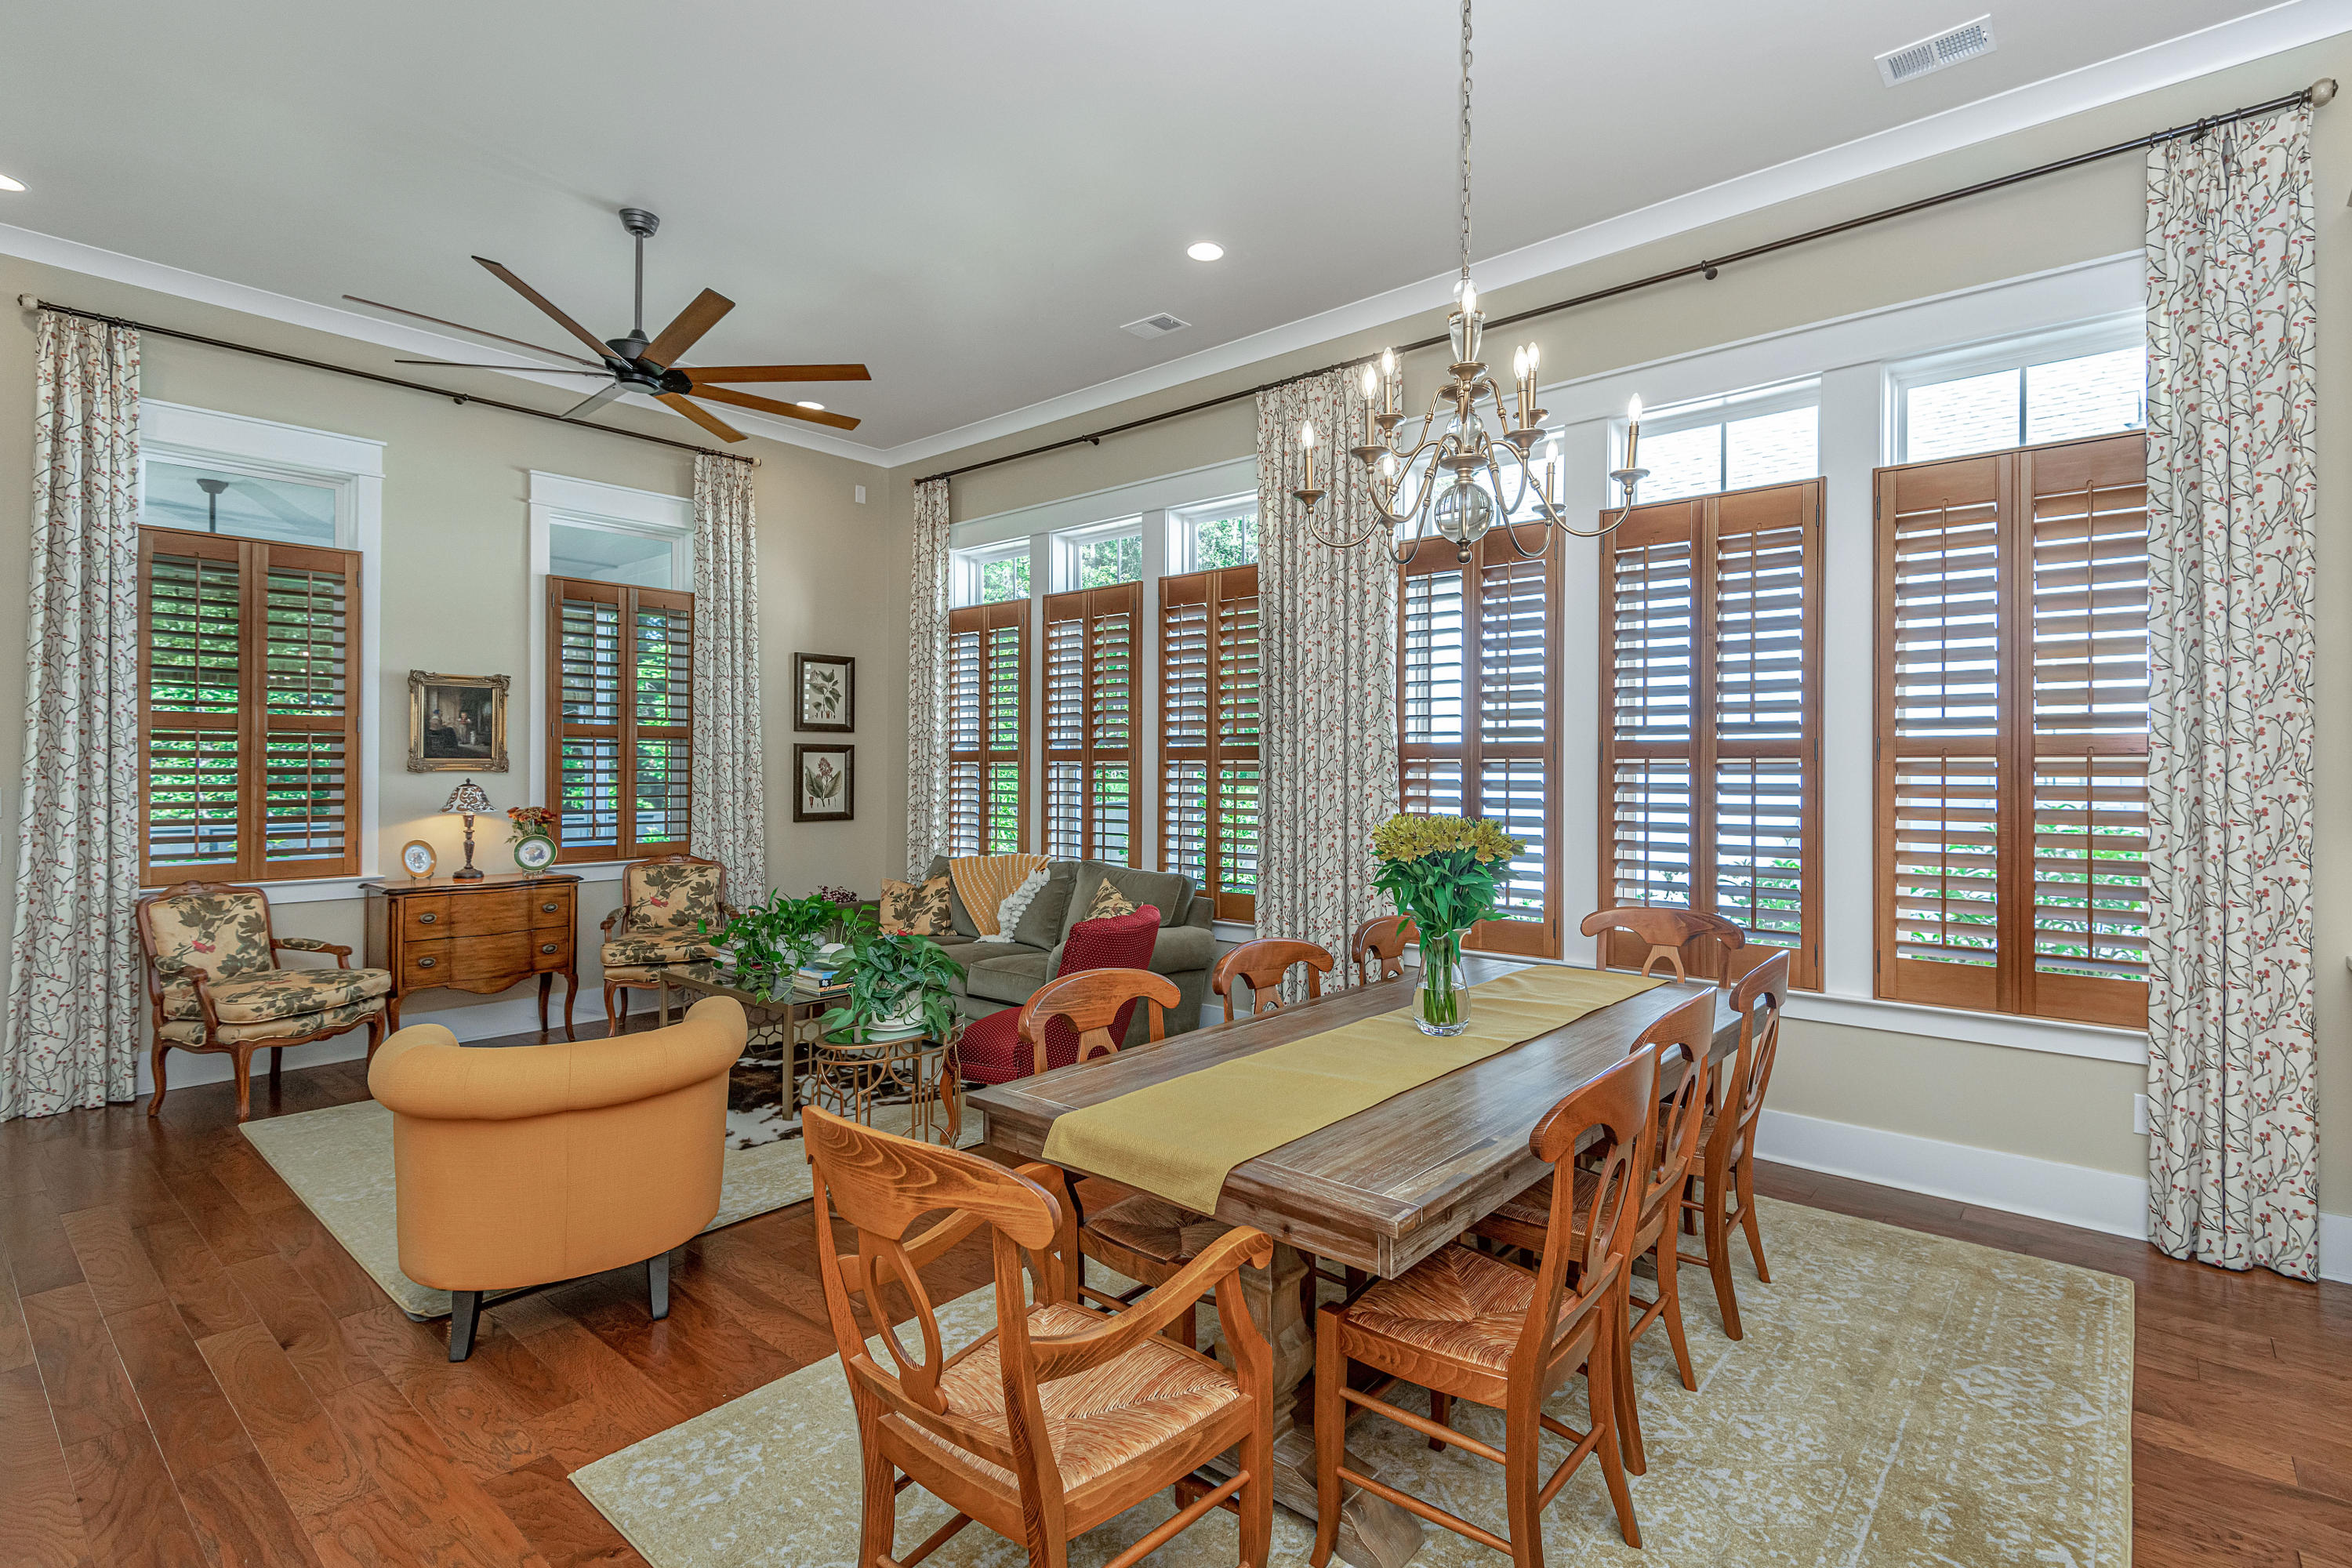 Dunes West Homes For Sale - 2870 Clearwater, Mount Pleasant, SC - 34